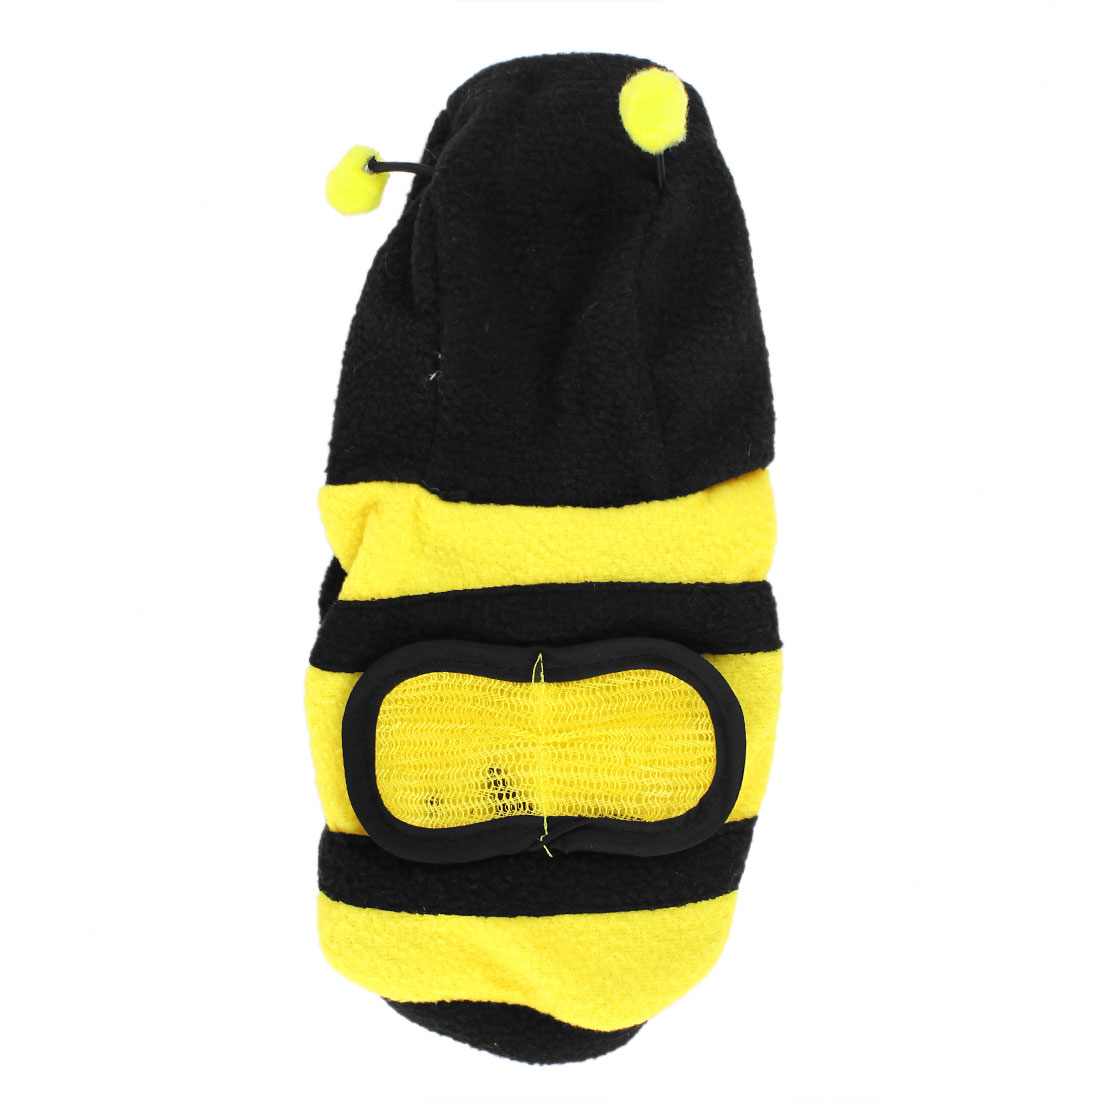 Yellow Black Bee Shaped Single Breasted Hoodie Pet Dog Doggy Coat Apparel Size S